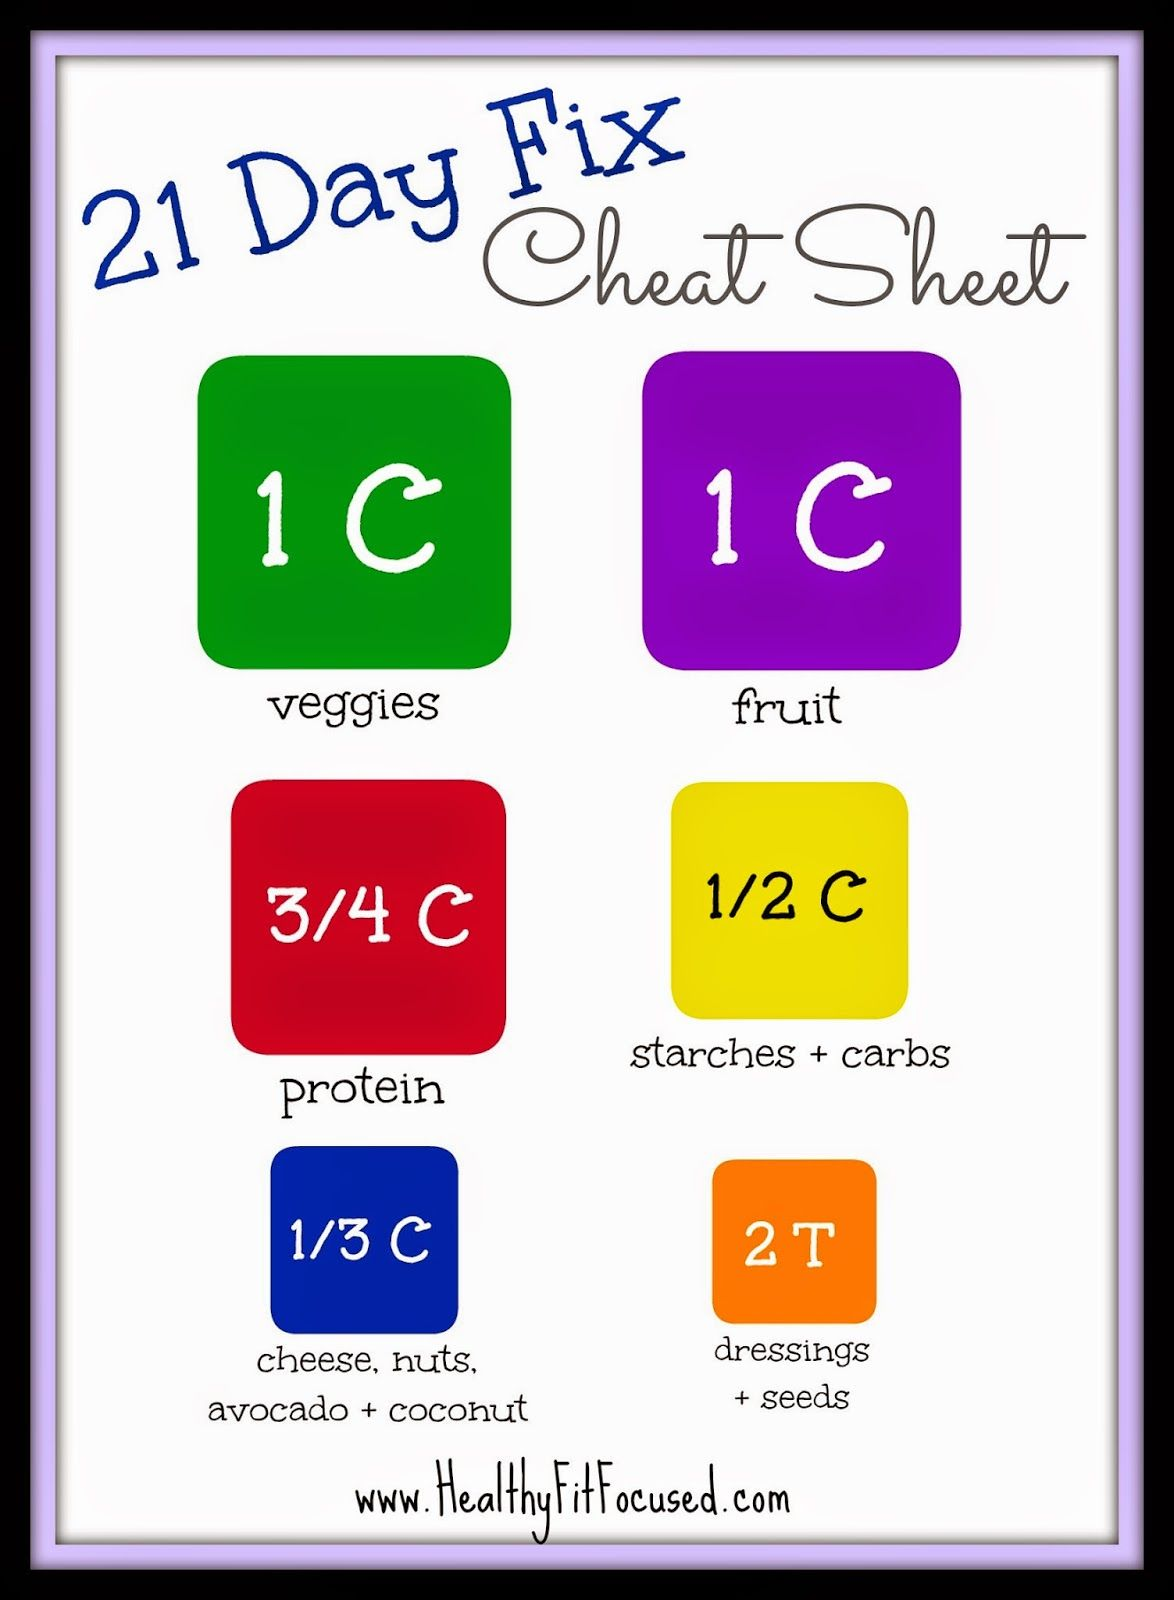 21 Day Fix Meal Breakdown, 21 Day Fix Cheat Sheet, 21 Day Fix Made ...